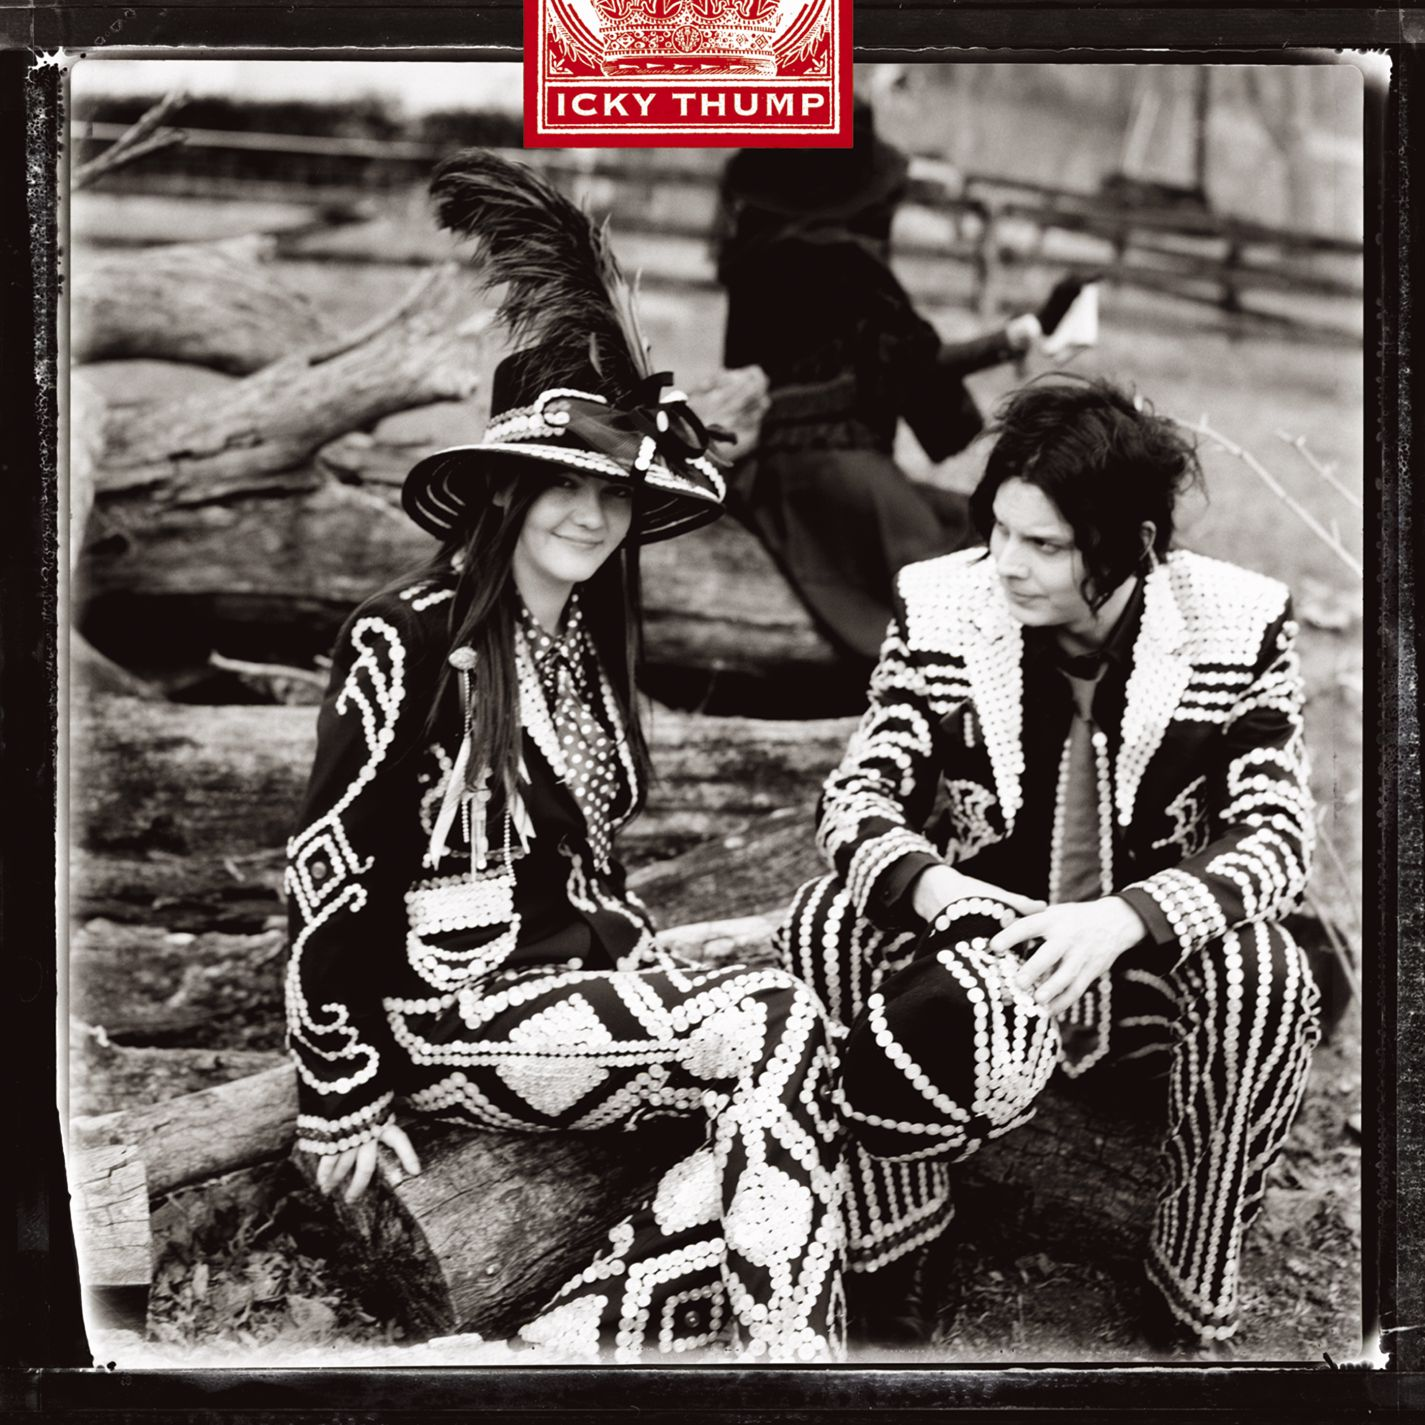 White+Stripes+Icky+Thump+album+cover+vinyl+rip.jpg